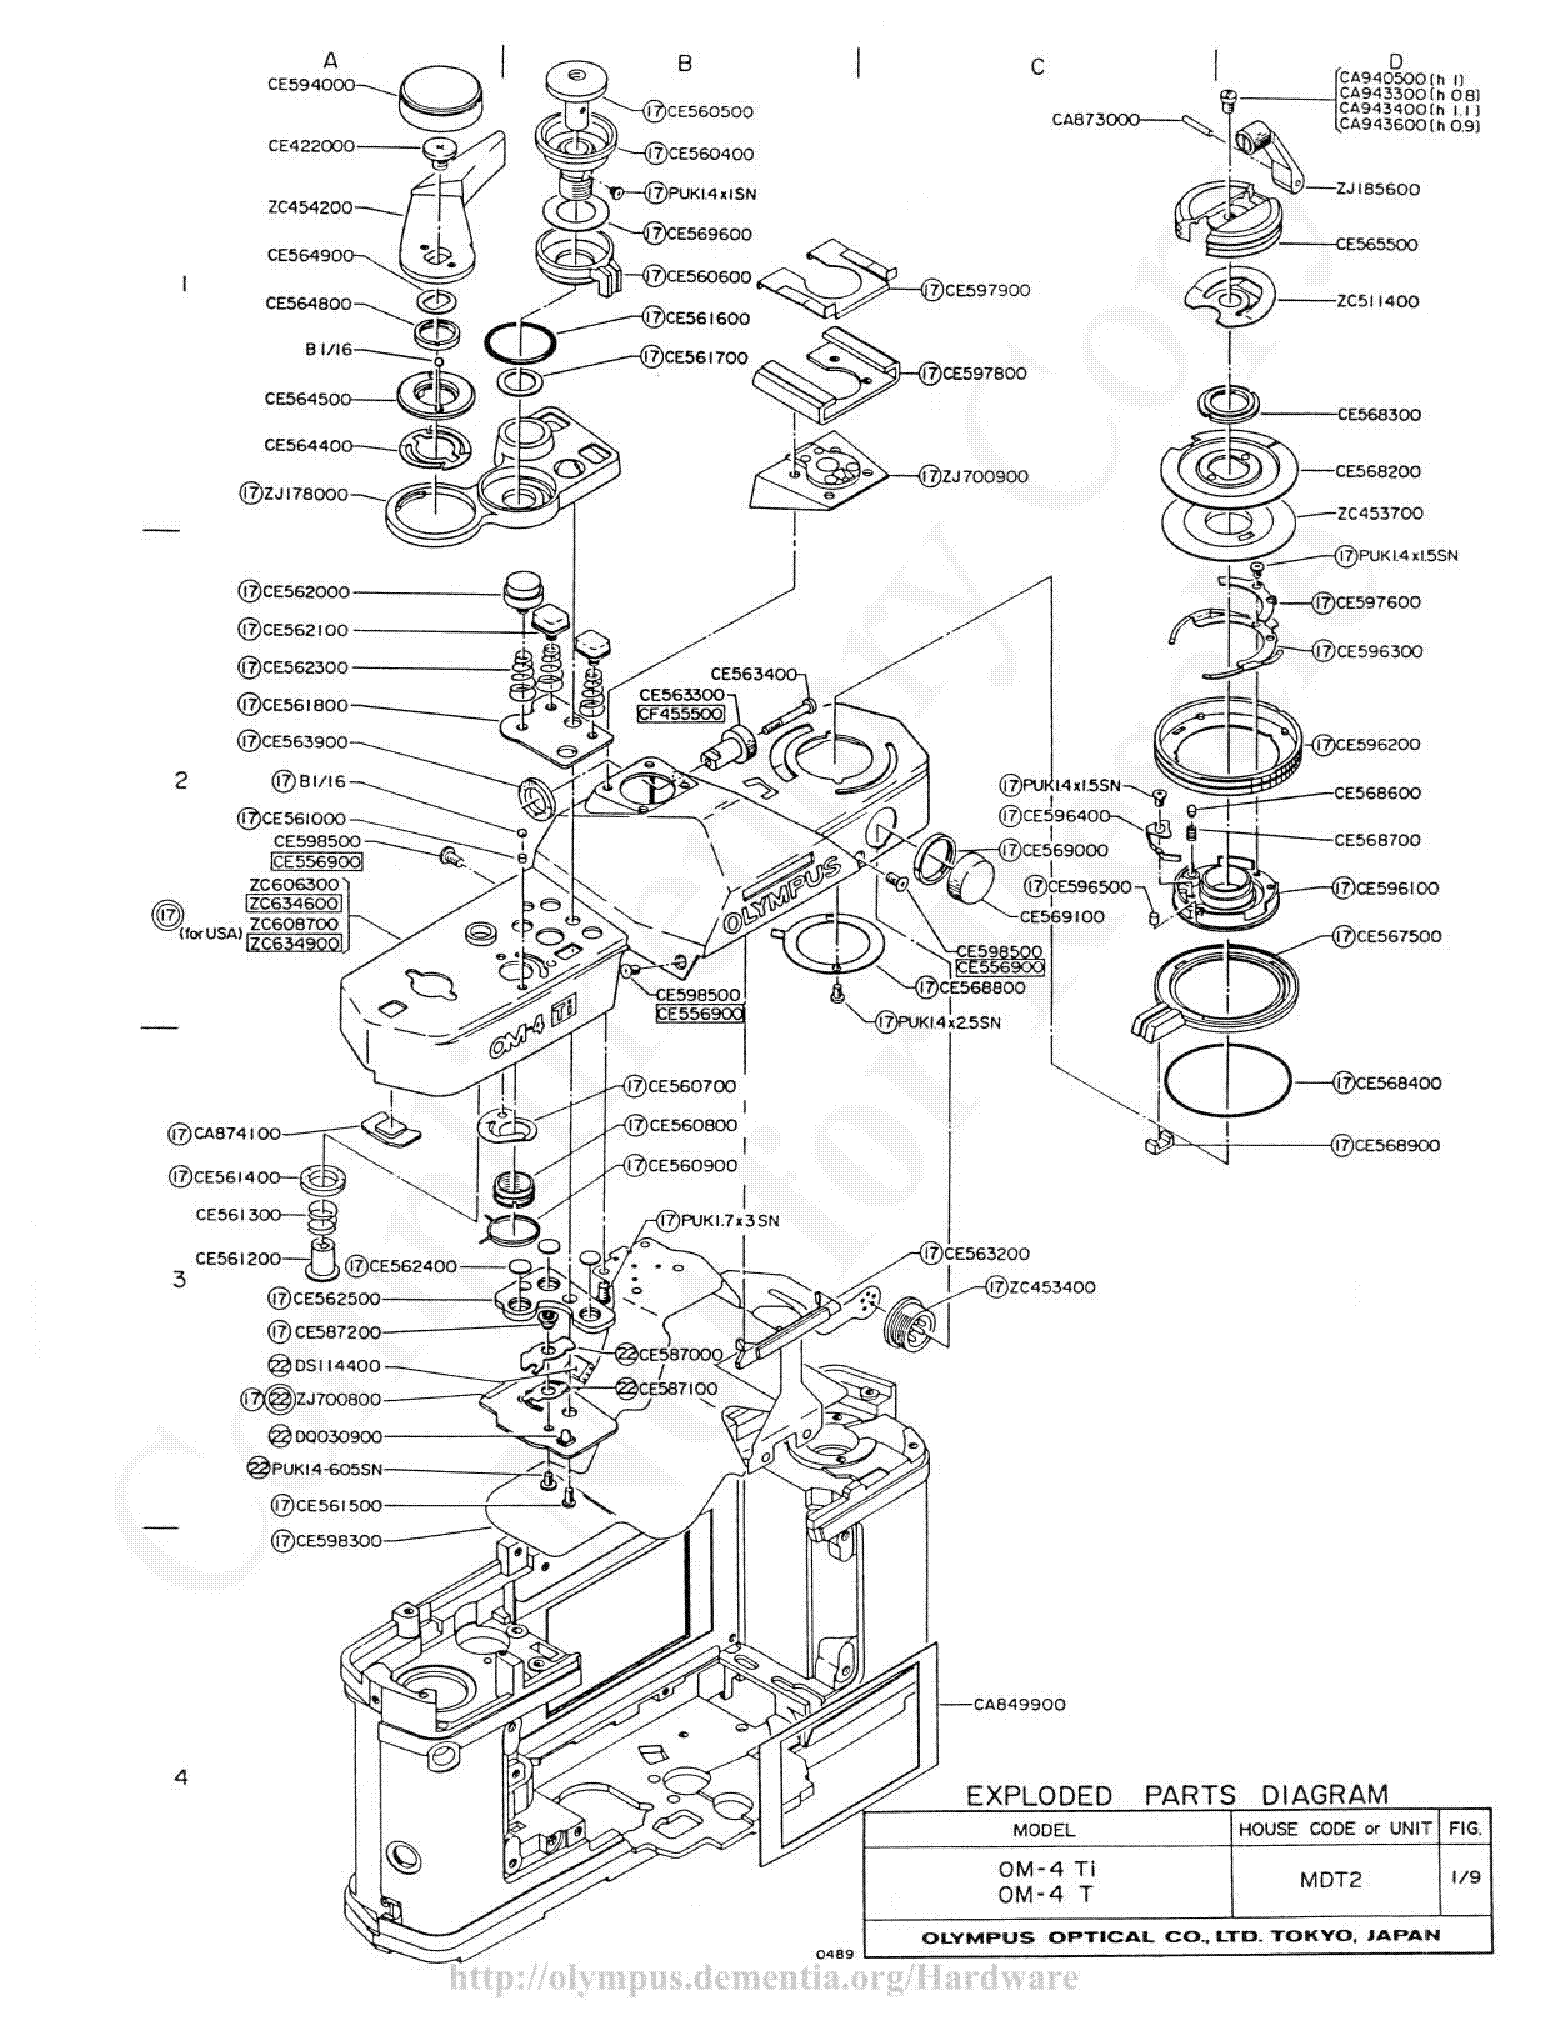 Olympus 100 200mm F5 Exploded Parts Diagram Service Manual